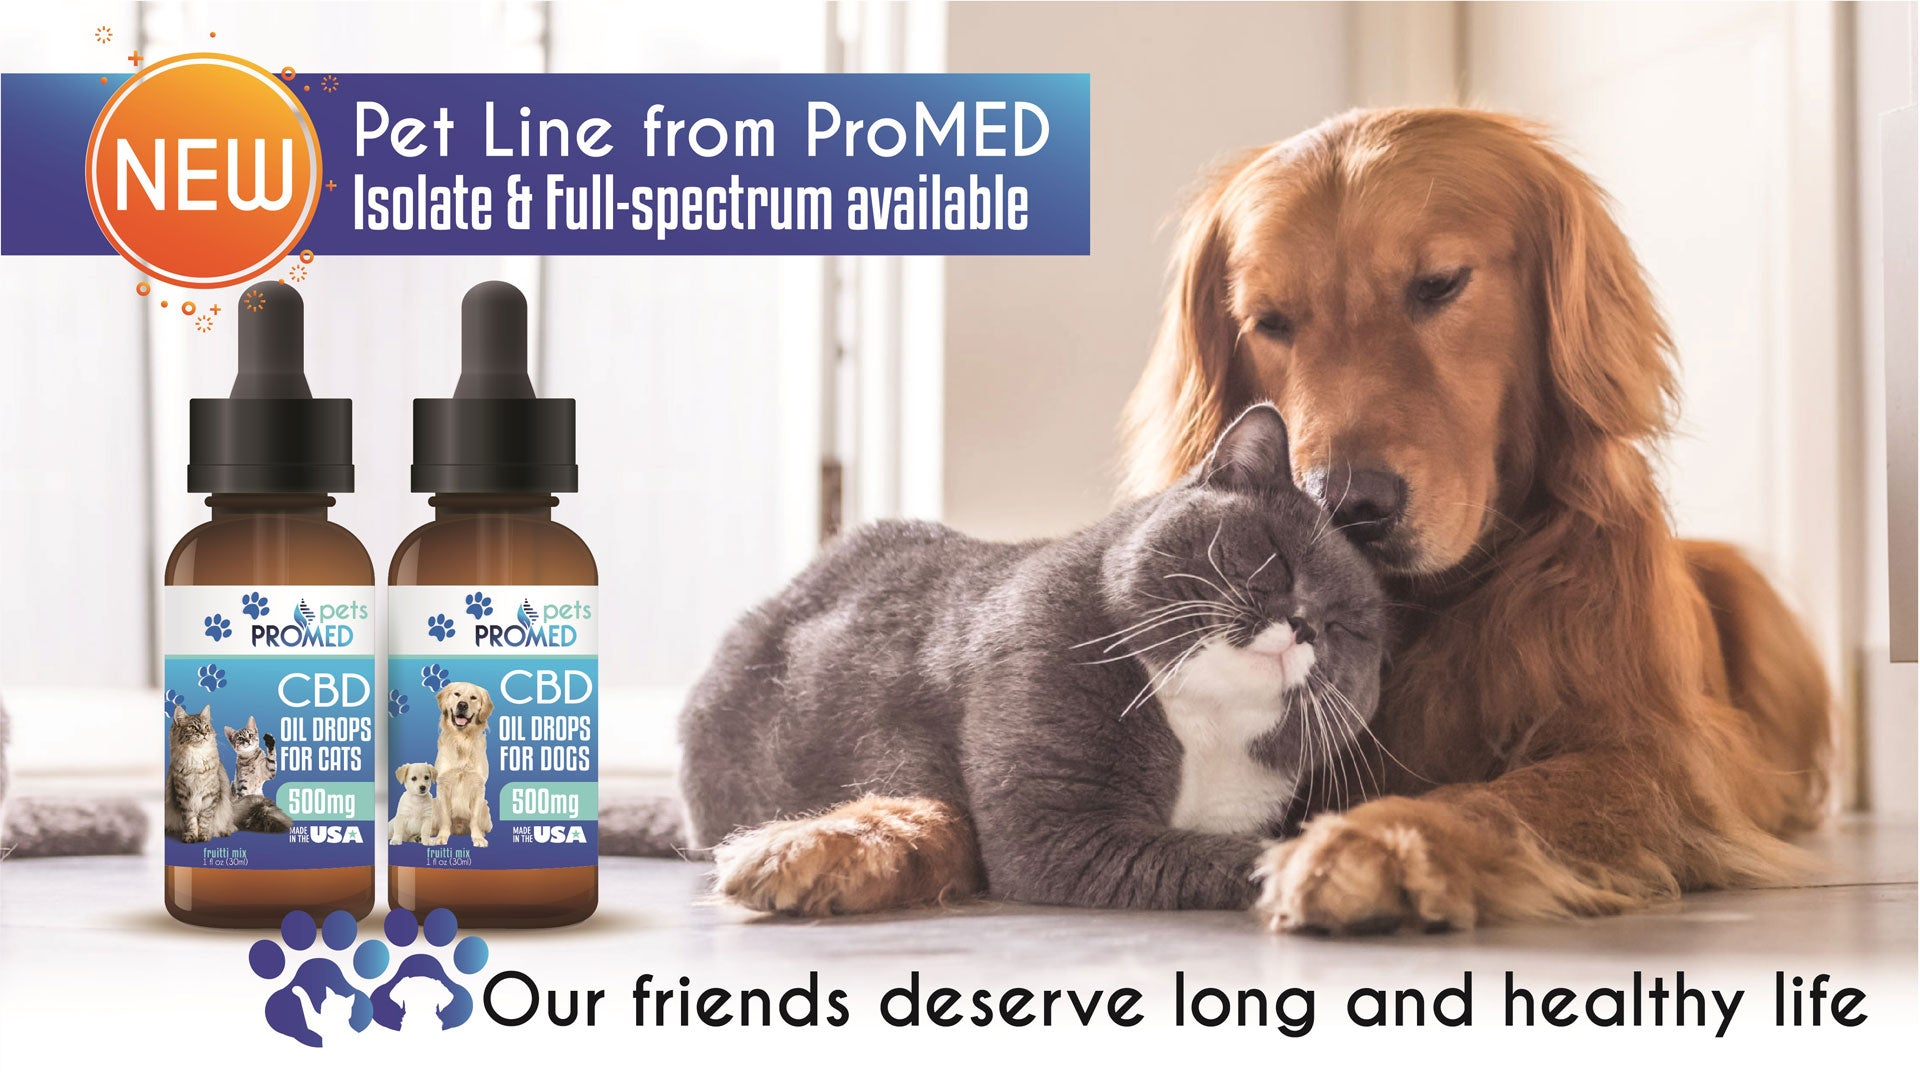 promed cbd pet isolate full spectrum